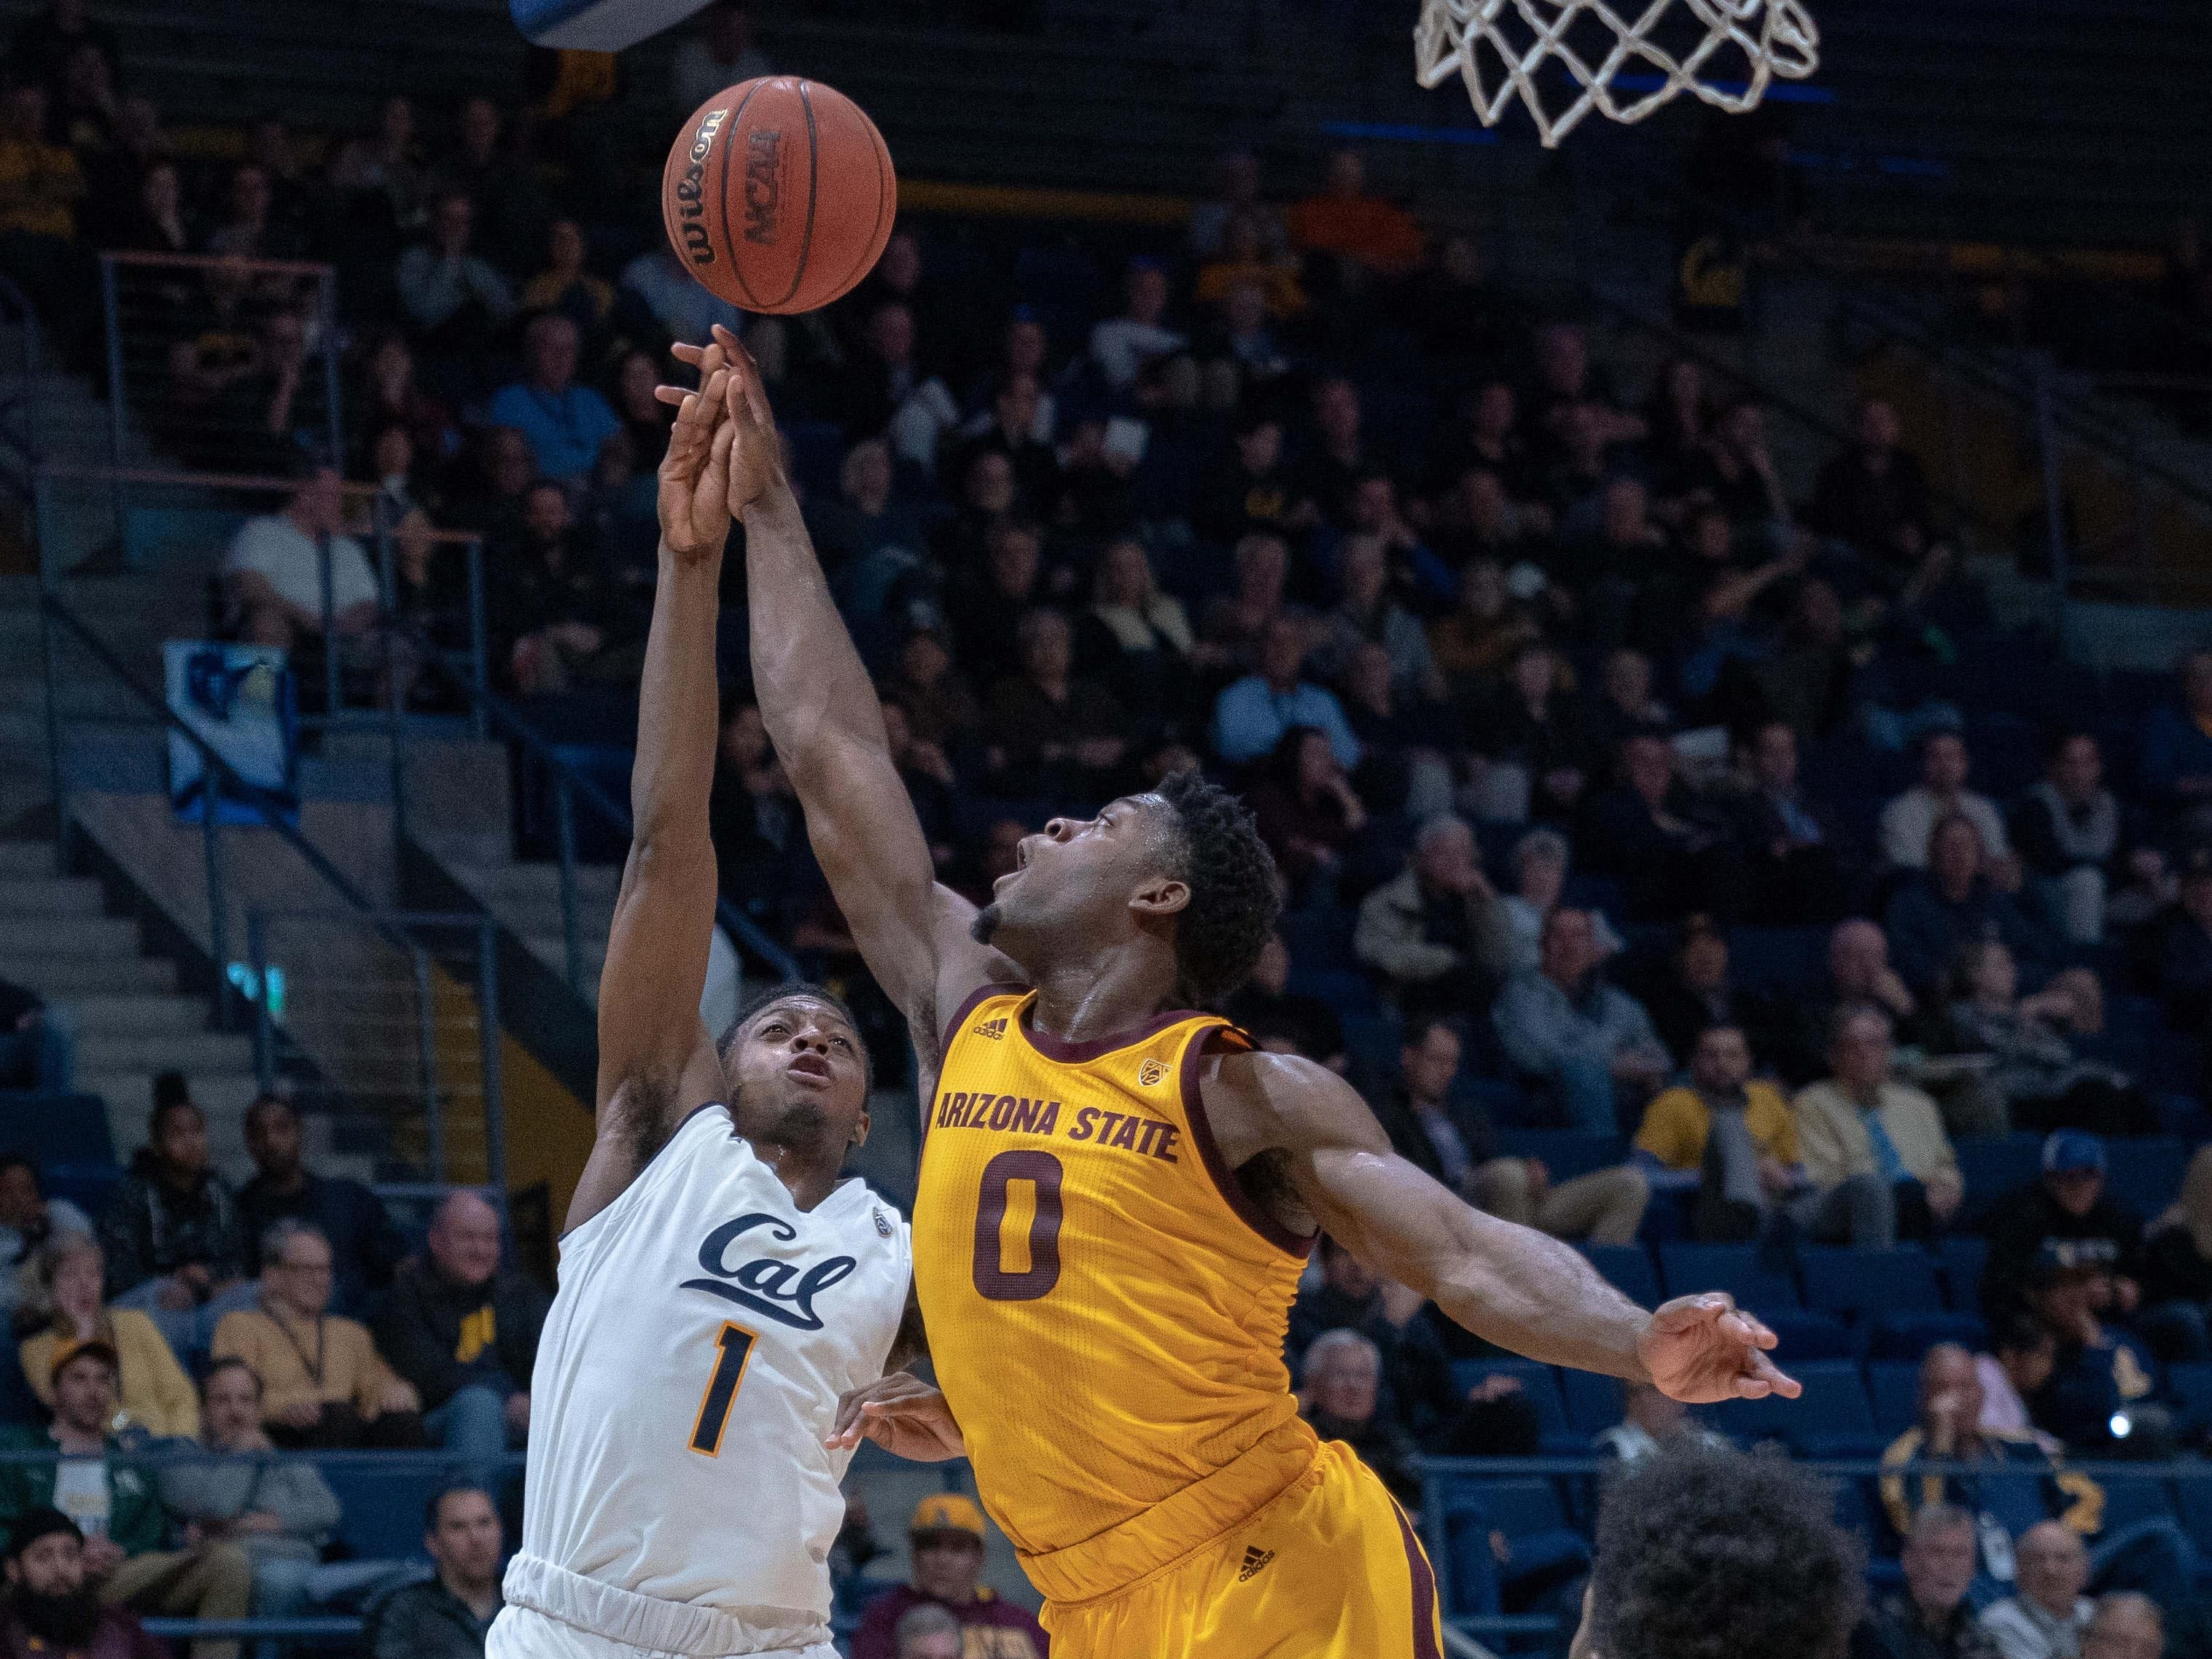 Jan 9, 2019; Berkeley, CA, USA; California Golden Bears guard Darius McNeill (1) shoots the basketball against Arizona State Sun Devils guard Luguentz Dort (0) during the first half at Haas Pavilion. Mandatory Credit: Neville E. Guard-USA TODAY Sports